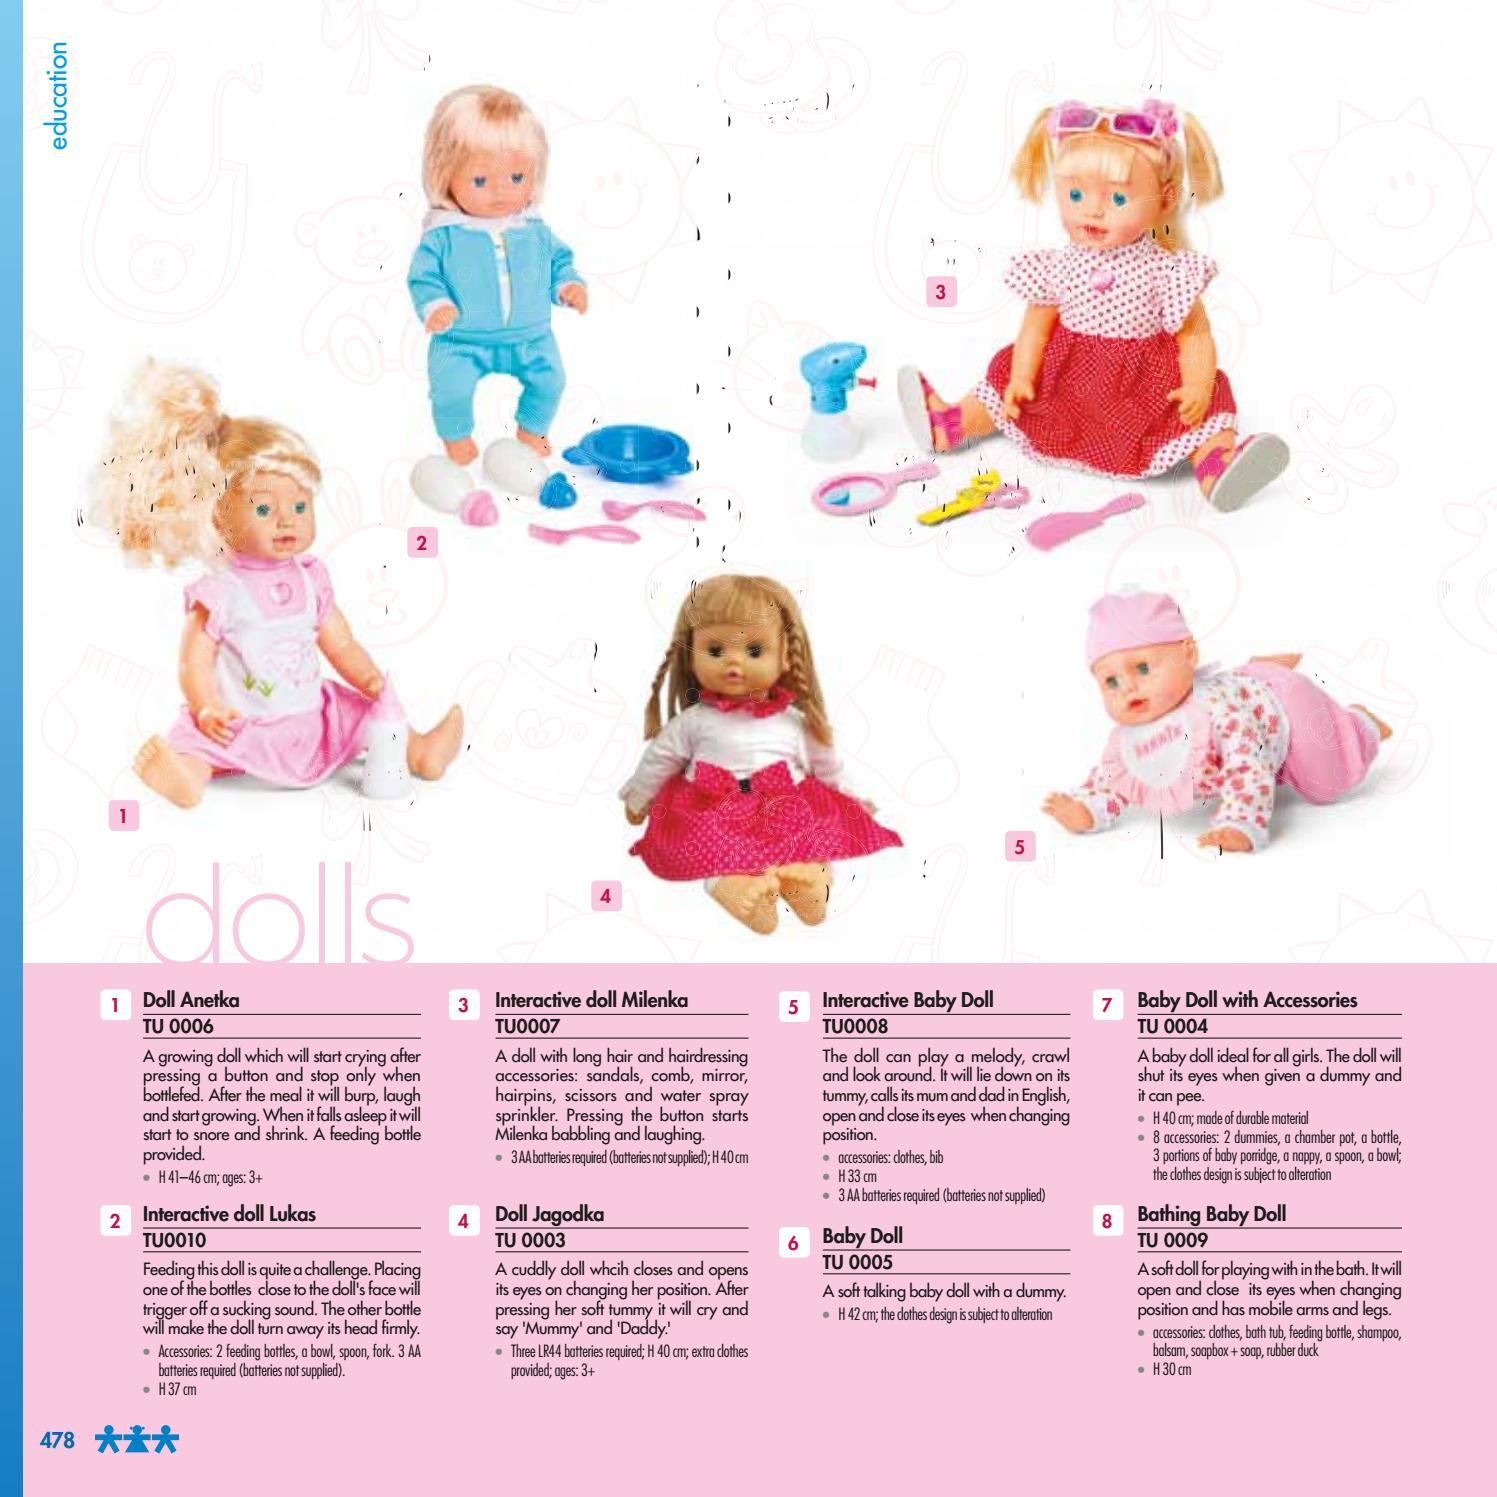 Provided Doll Fashion, Character, Play Dolls Dolls